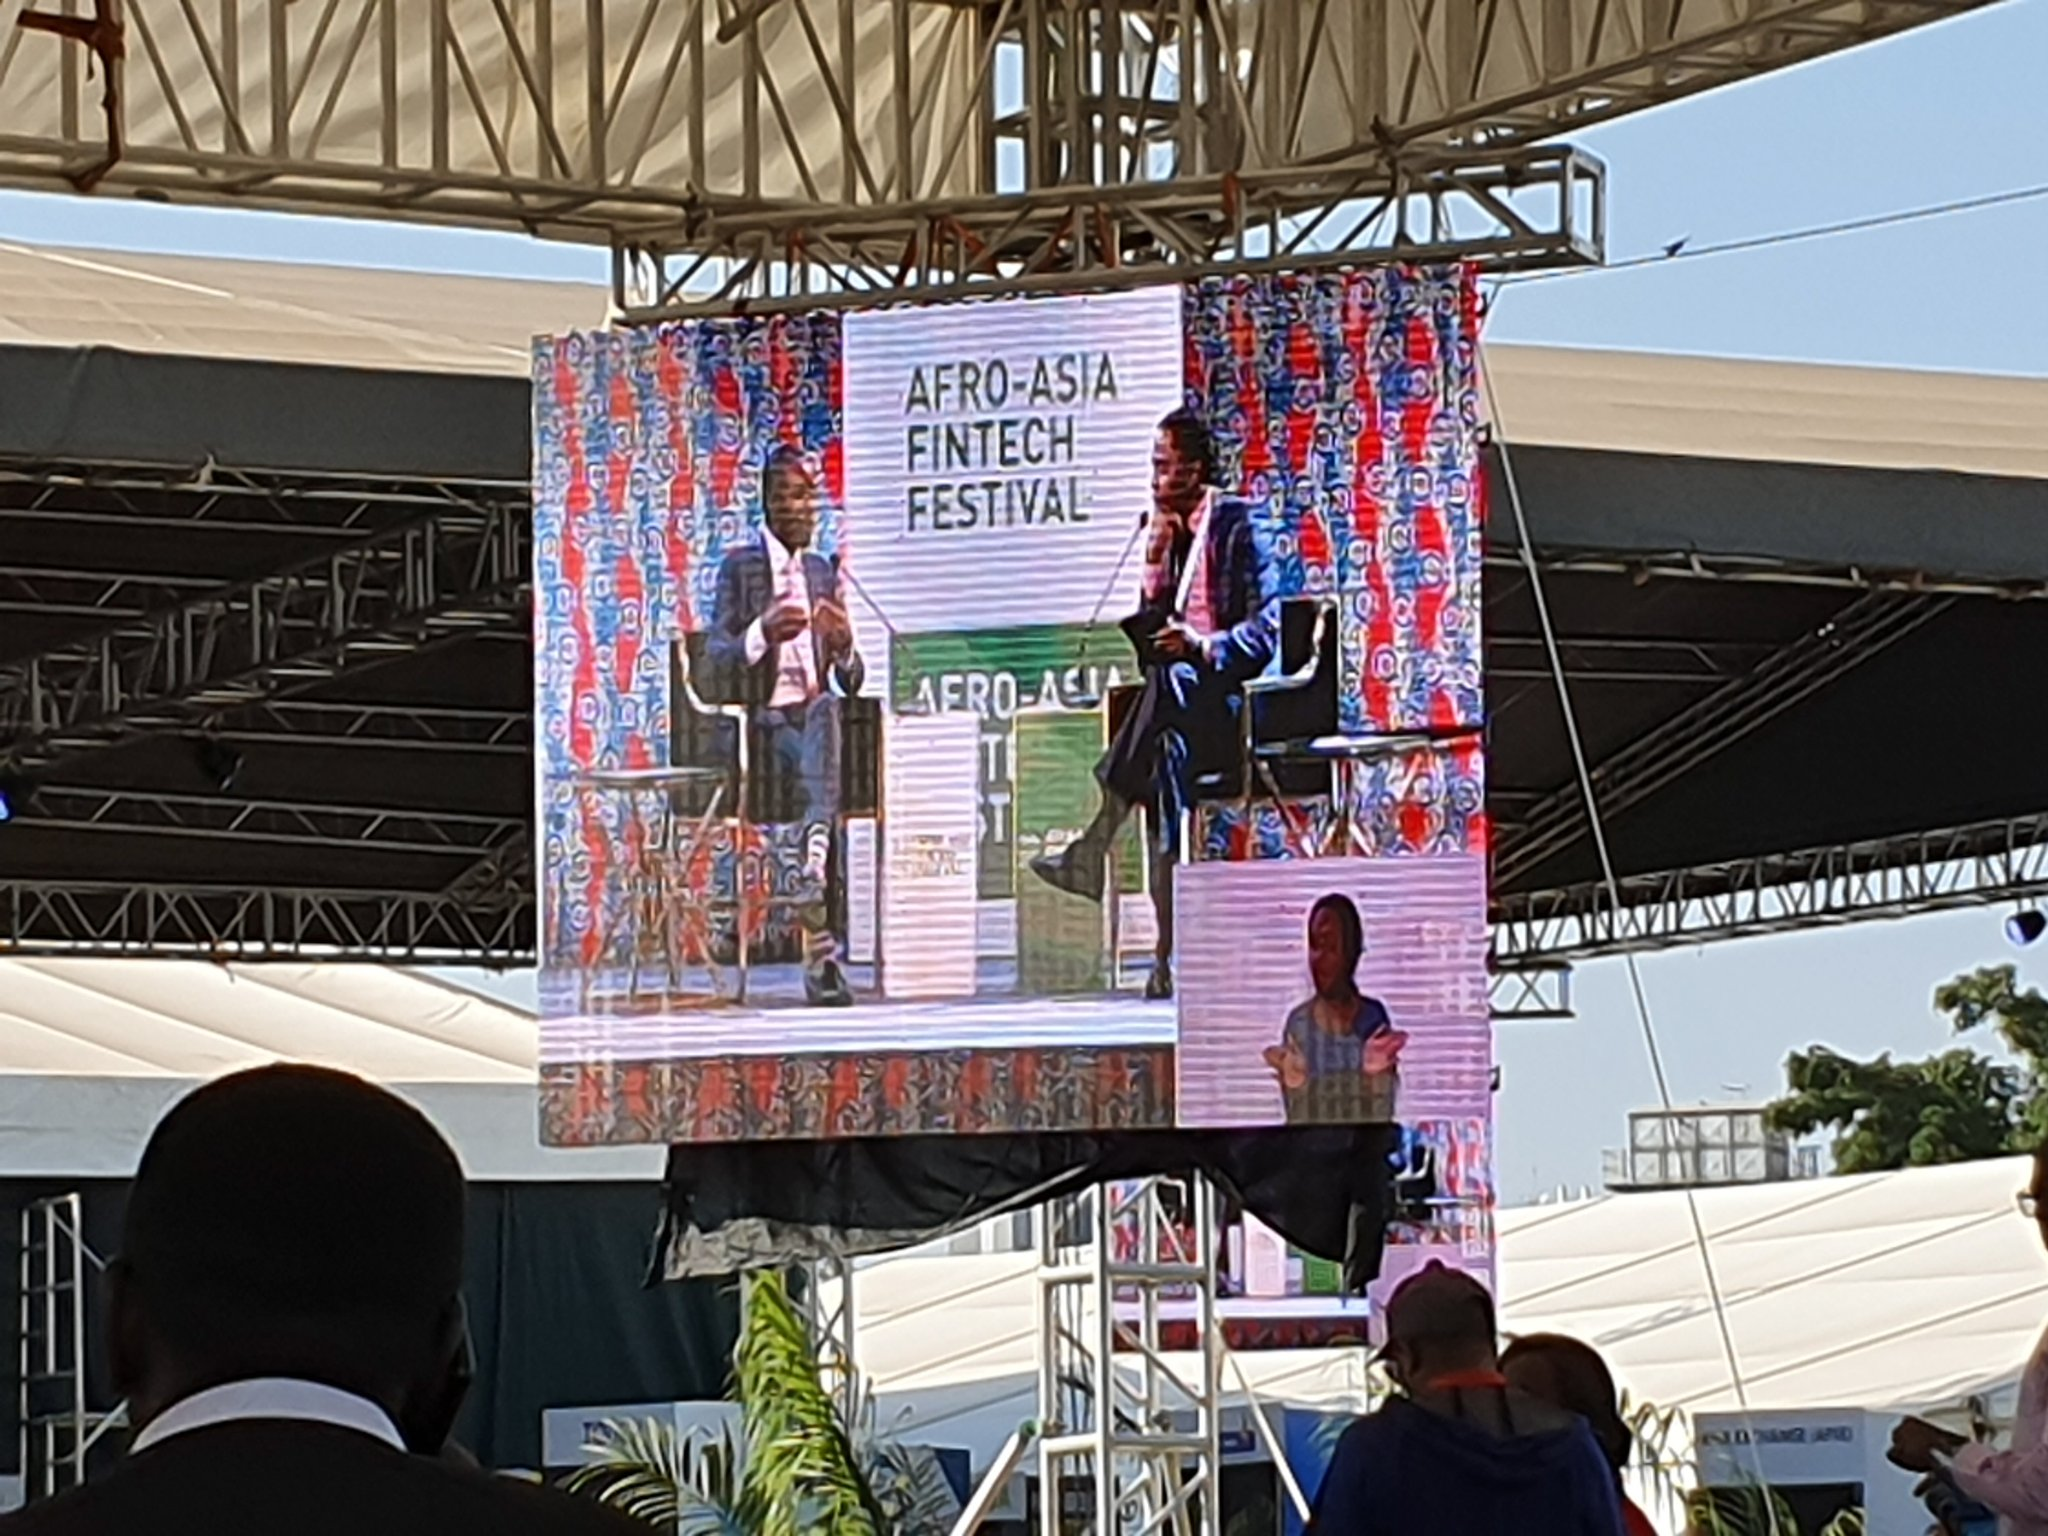 "The  #AfroAsiaFintechFest  is part of the initiatives @CBKKenya is making  towards creating opportunities for Kenya and Africa in terms of innovation""   Joe Mucheru ICT Cabinet Secretary https://t.co/L76W2Xrlda"